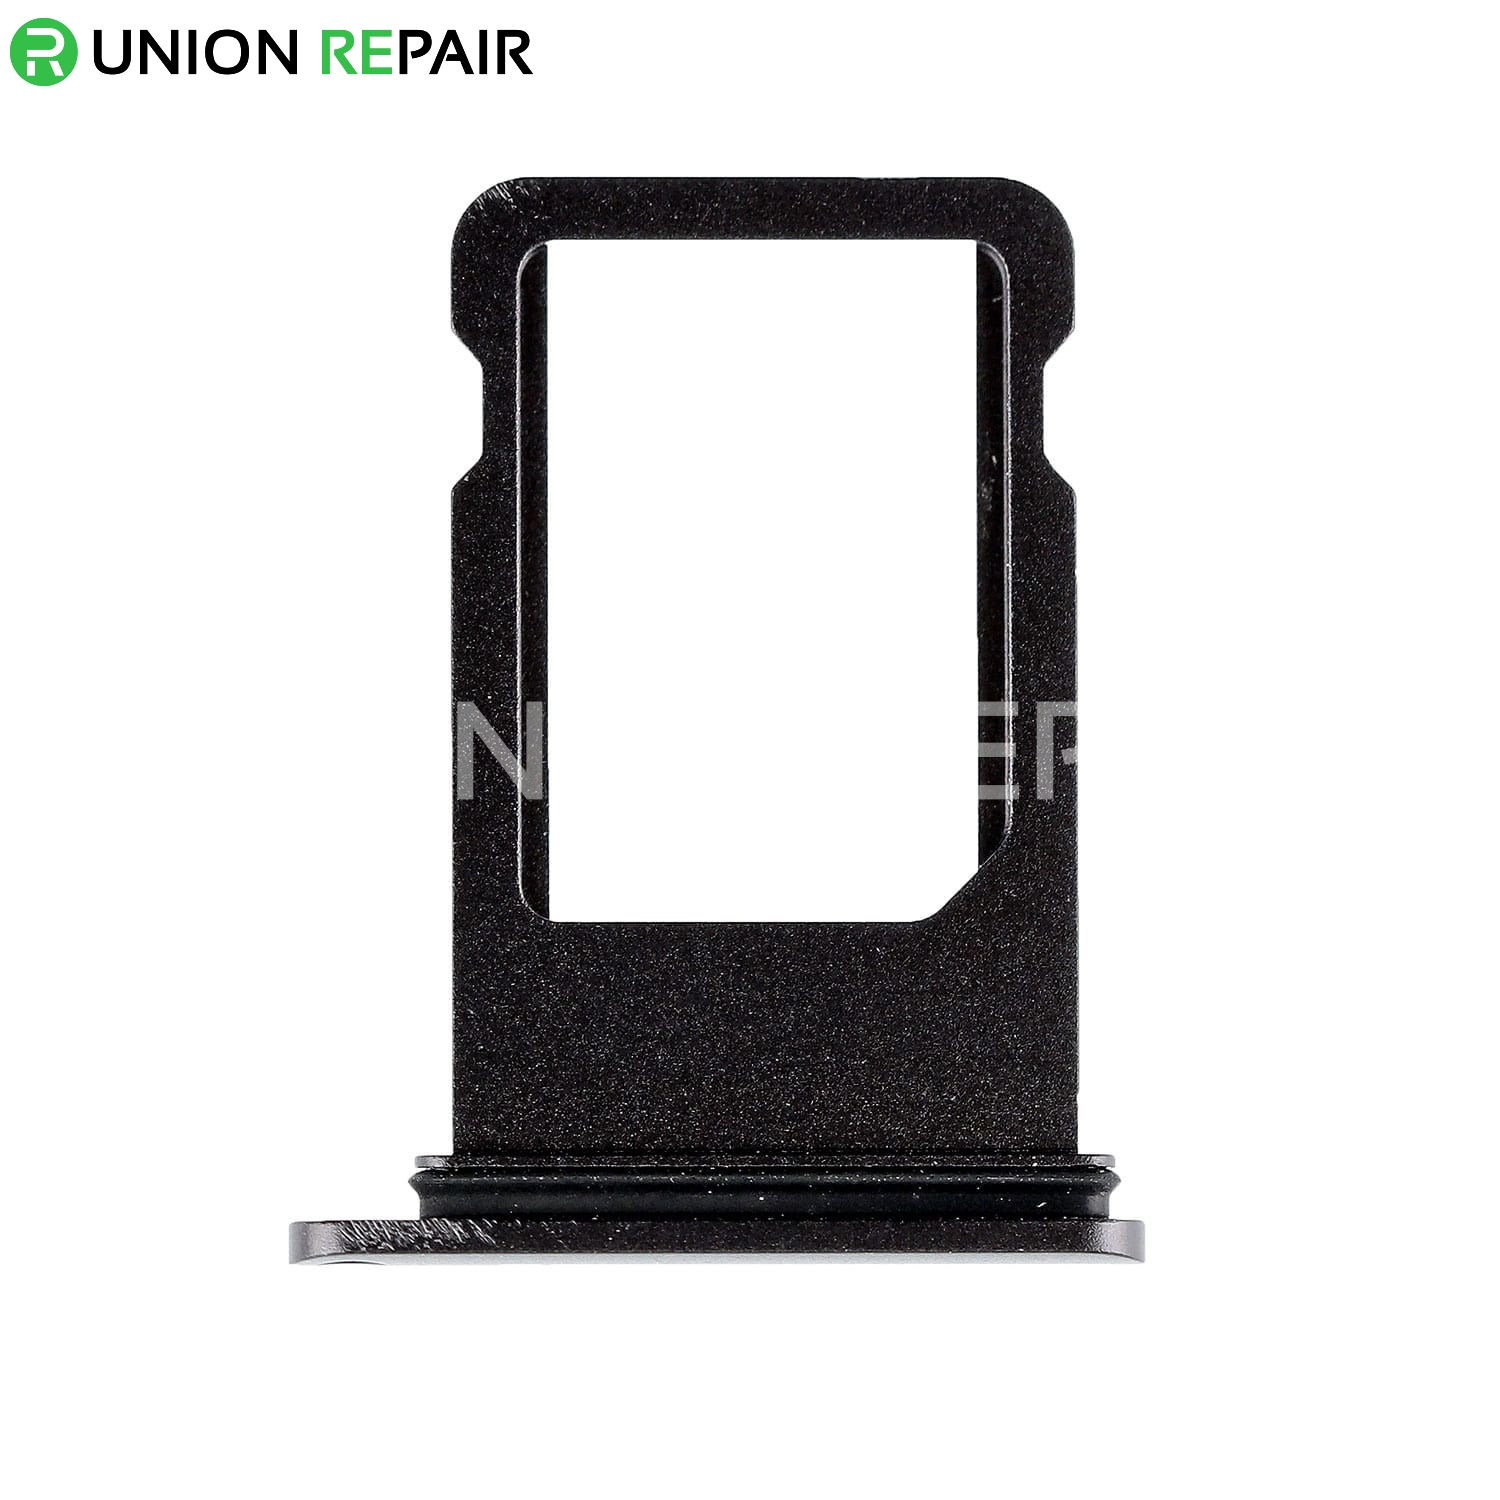 Replacement For IPhone 8 Plus SIM Card Tray With Waterproof Circle